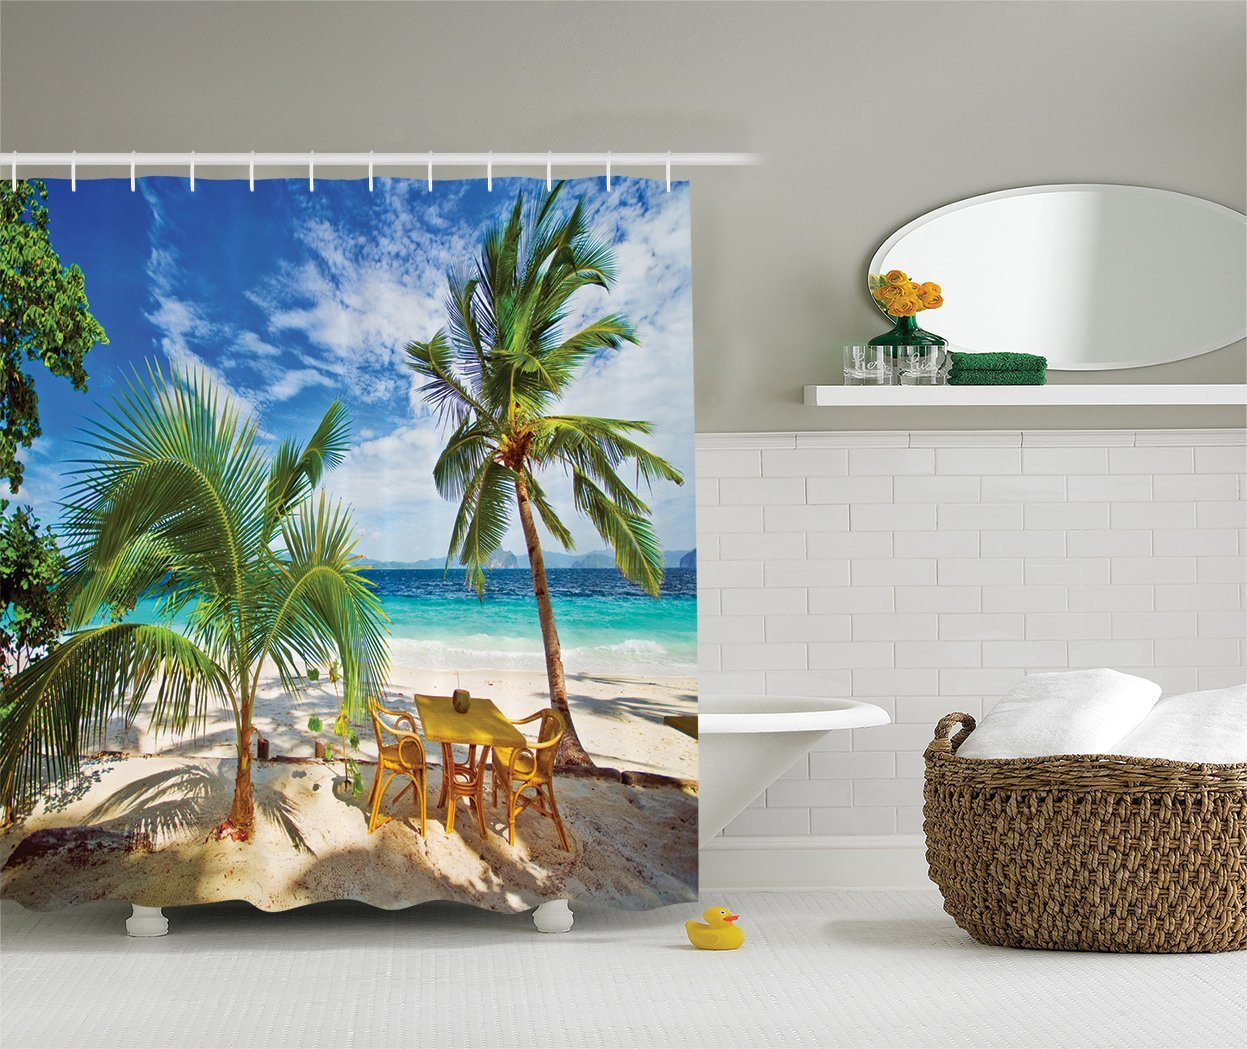 Palm shower curtain - Memory Home Beach Shower Curtain Sunlight Palm Trees Shadows Shades Print Waterproof Polyester Fabric Bathroom Shower